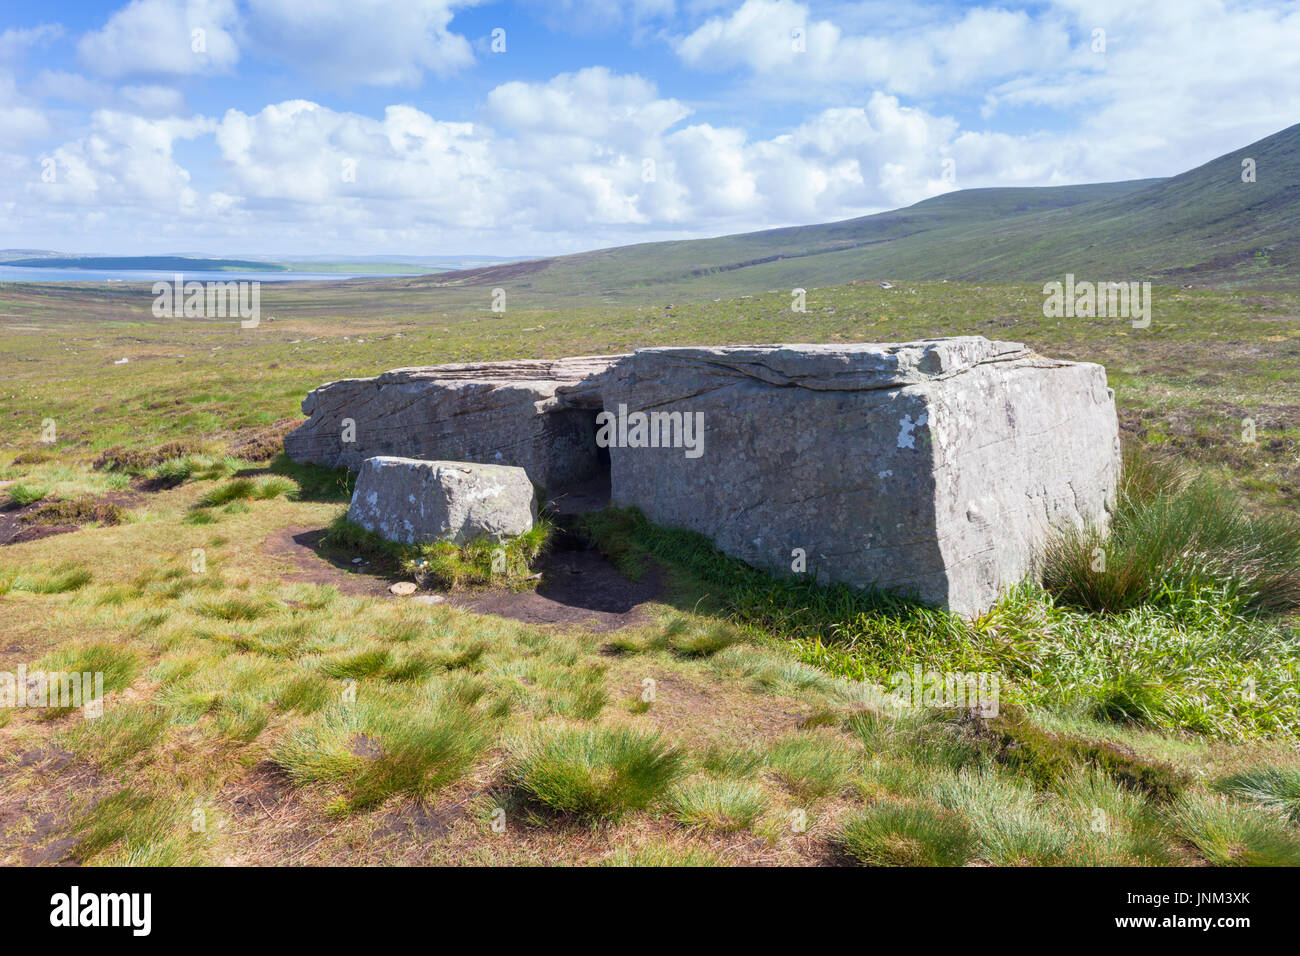 The Dwarfie Stane, a megalithic chambered tomb carved out of a block of Devonian Old Red Sandstone located in a steep-sided glaciated valley - Stock Image